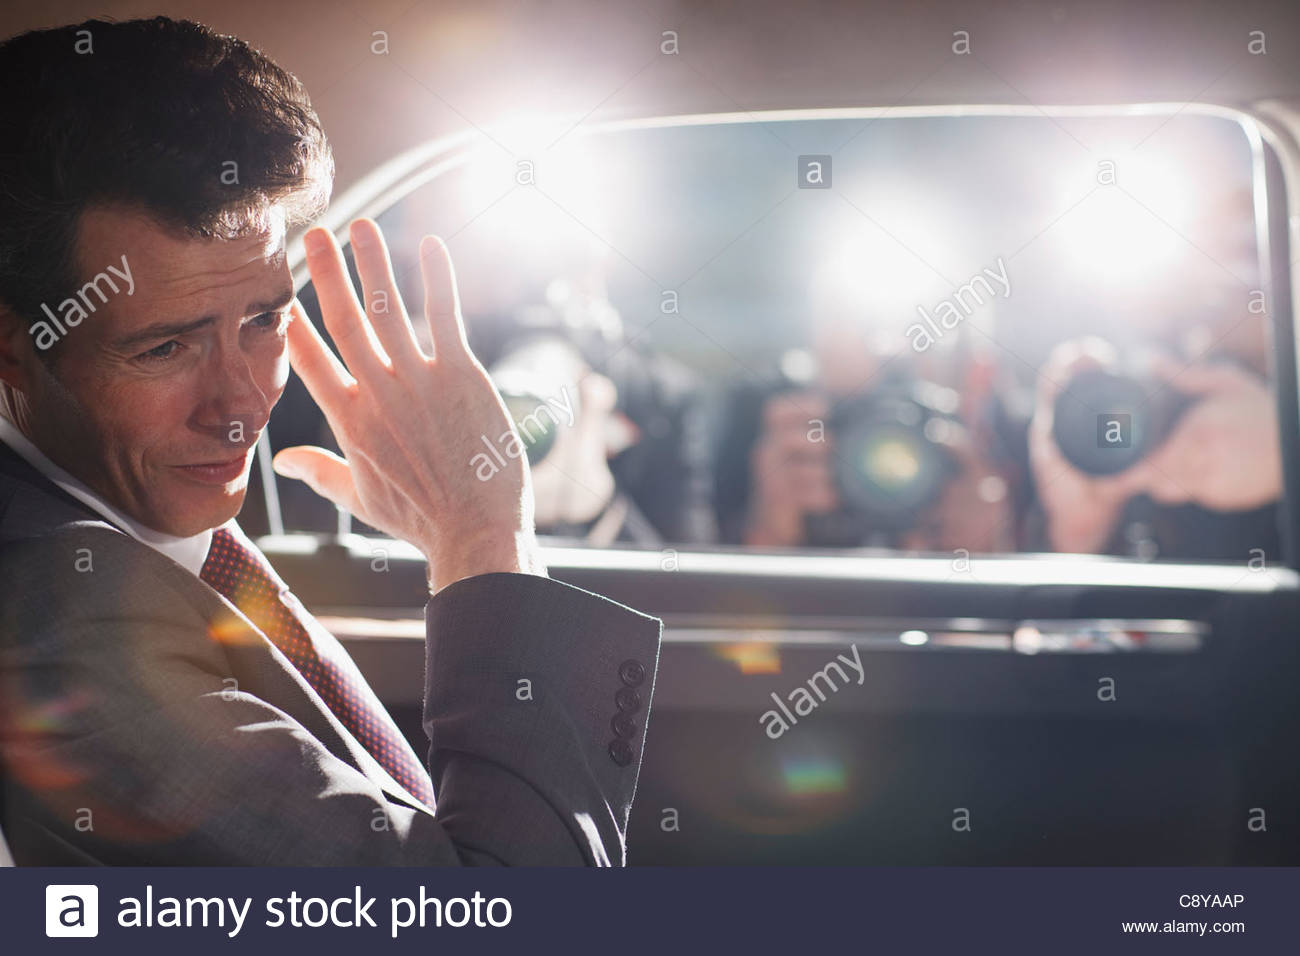 Politician shielding himself from paparazzi - Stock Image